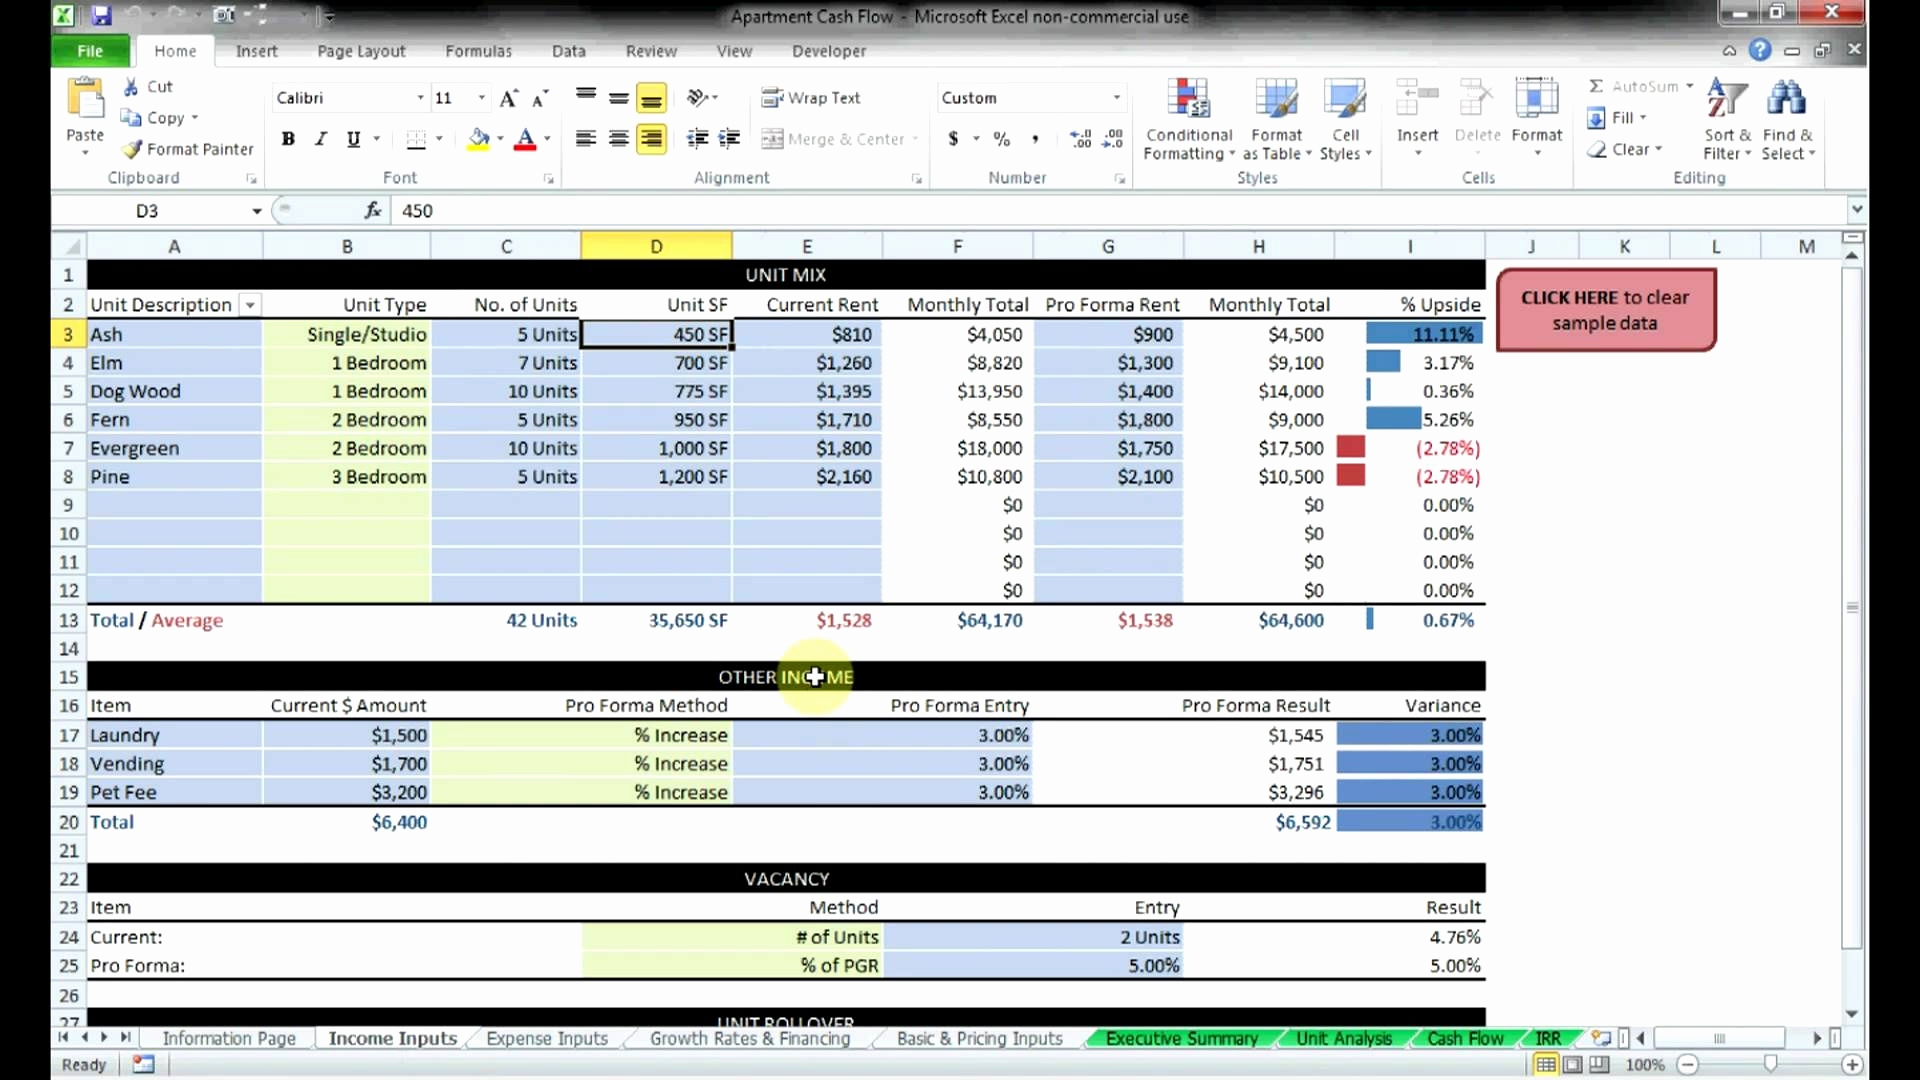 Commercial Lease Analysis Spreadsheet Inside Commercial Lease Analysis Spreadsheet 2018 How To Make An Excel